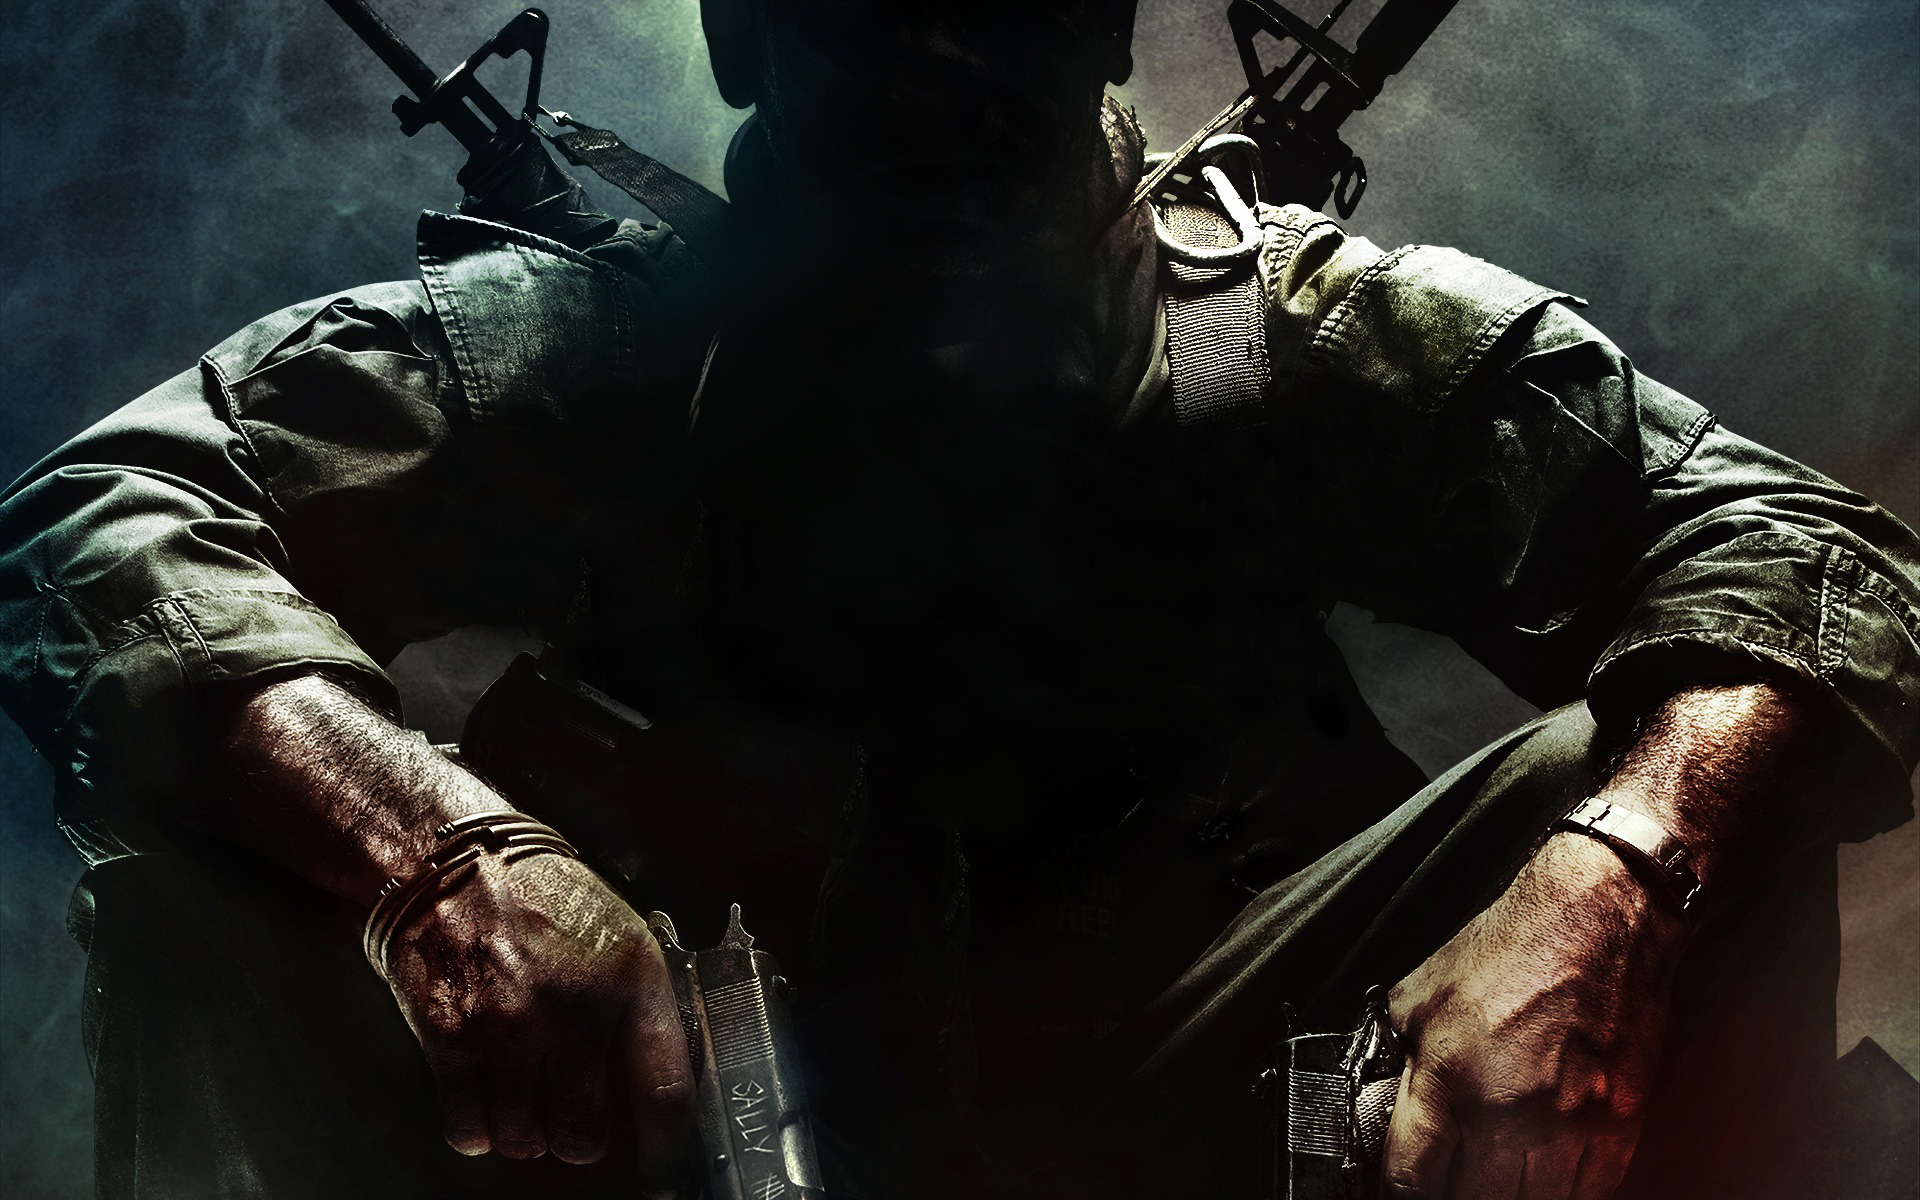 Call Of Duty: Black Ops Computer Wallpapers, Desktop Backgrounds